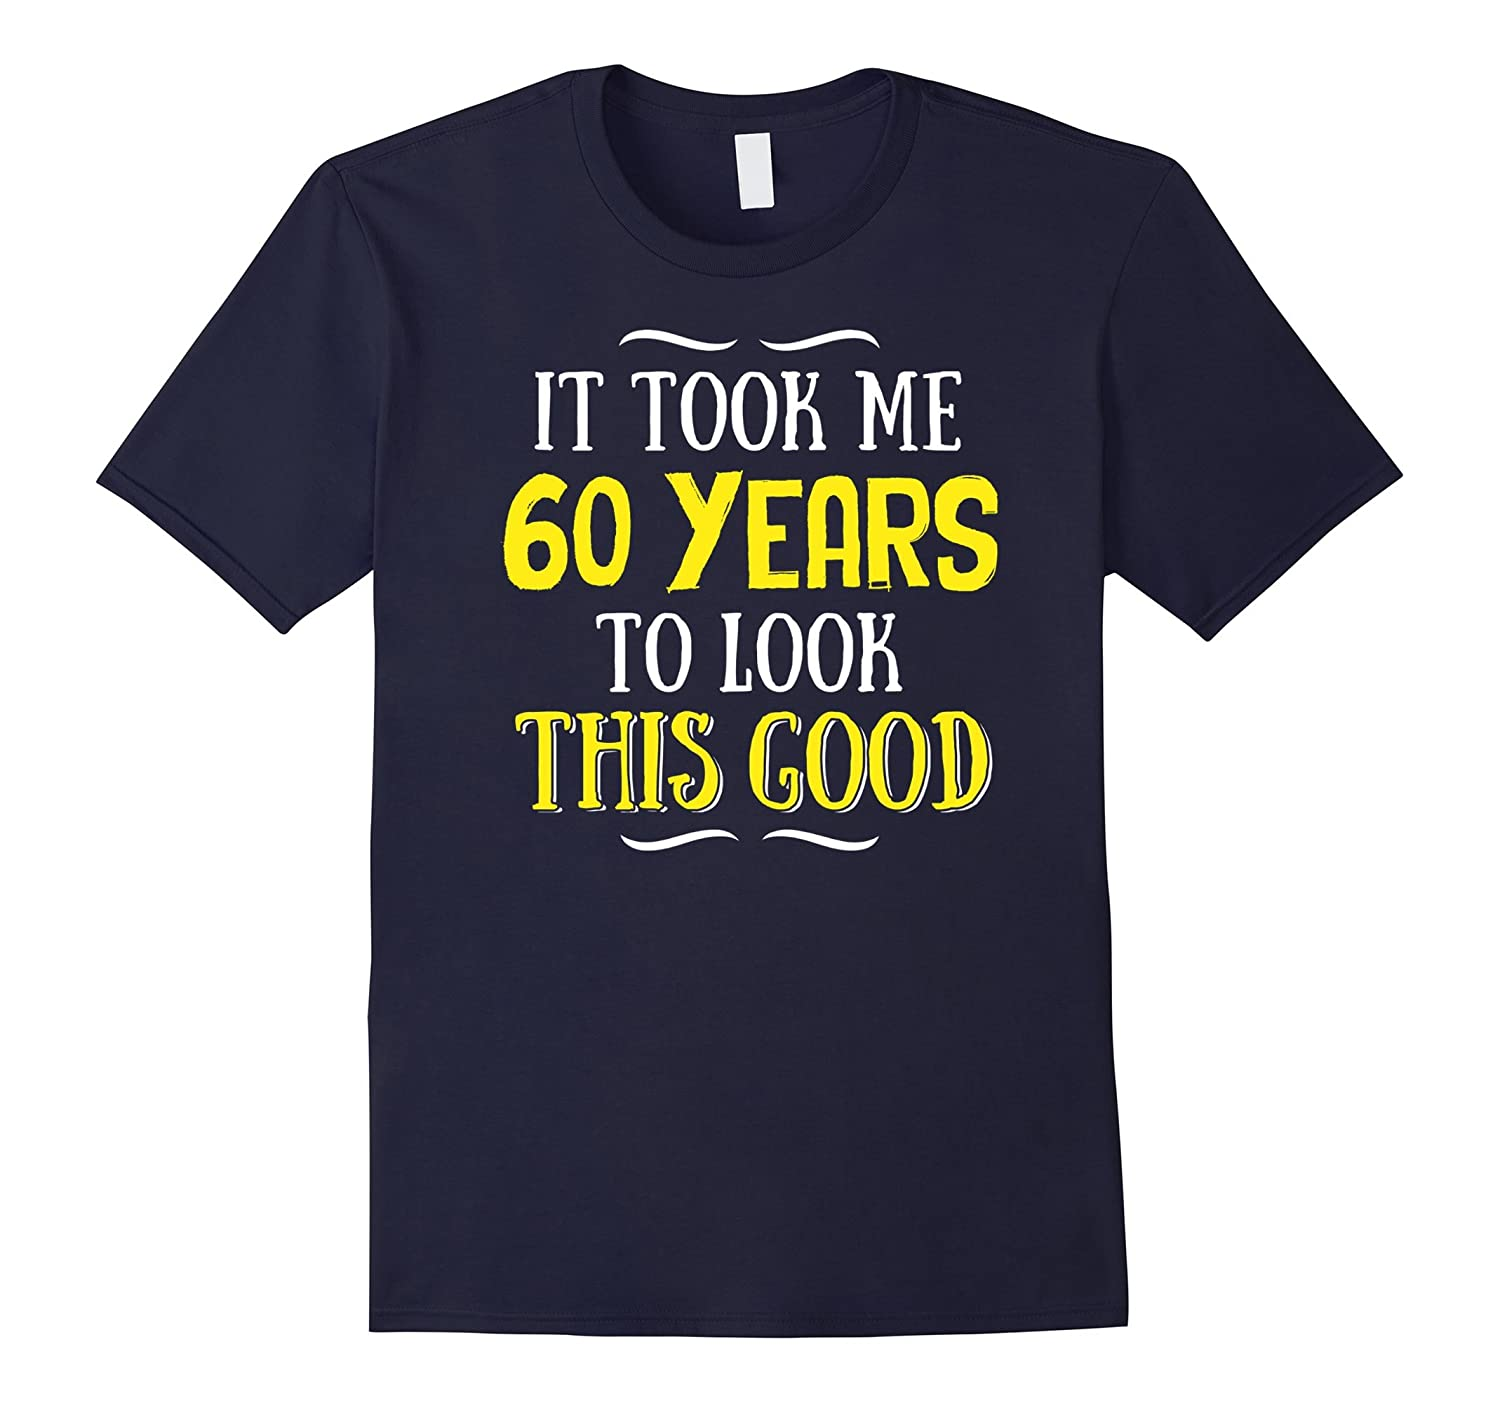 60 Years Old Birthday T-Shirt - Happy 60th Birthday!-Art